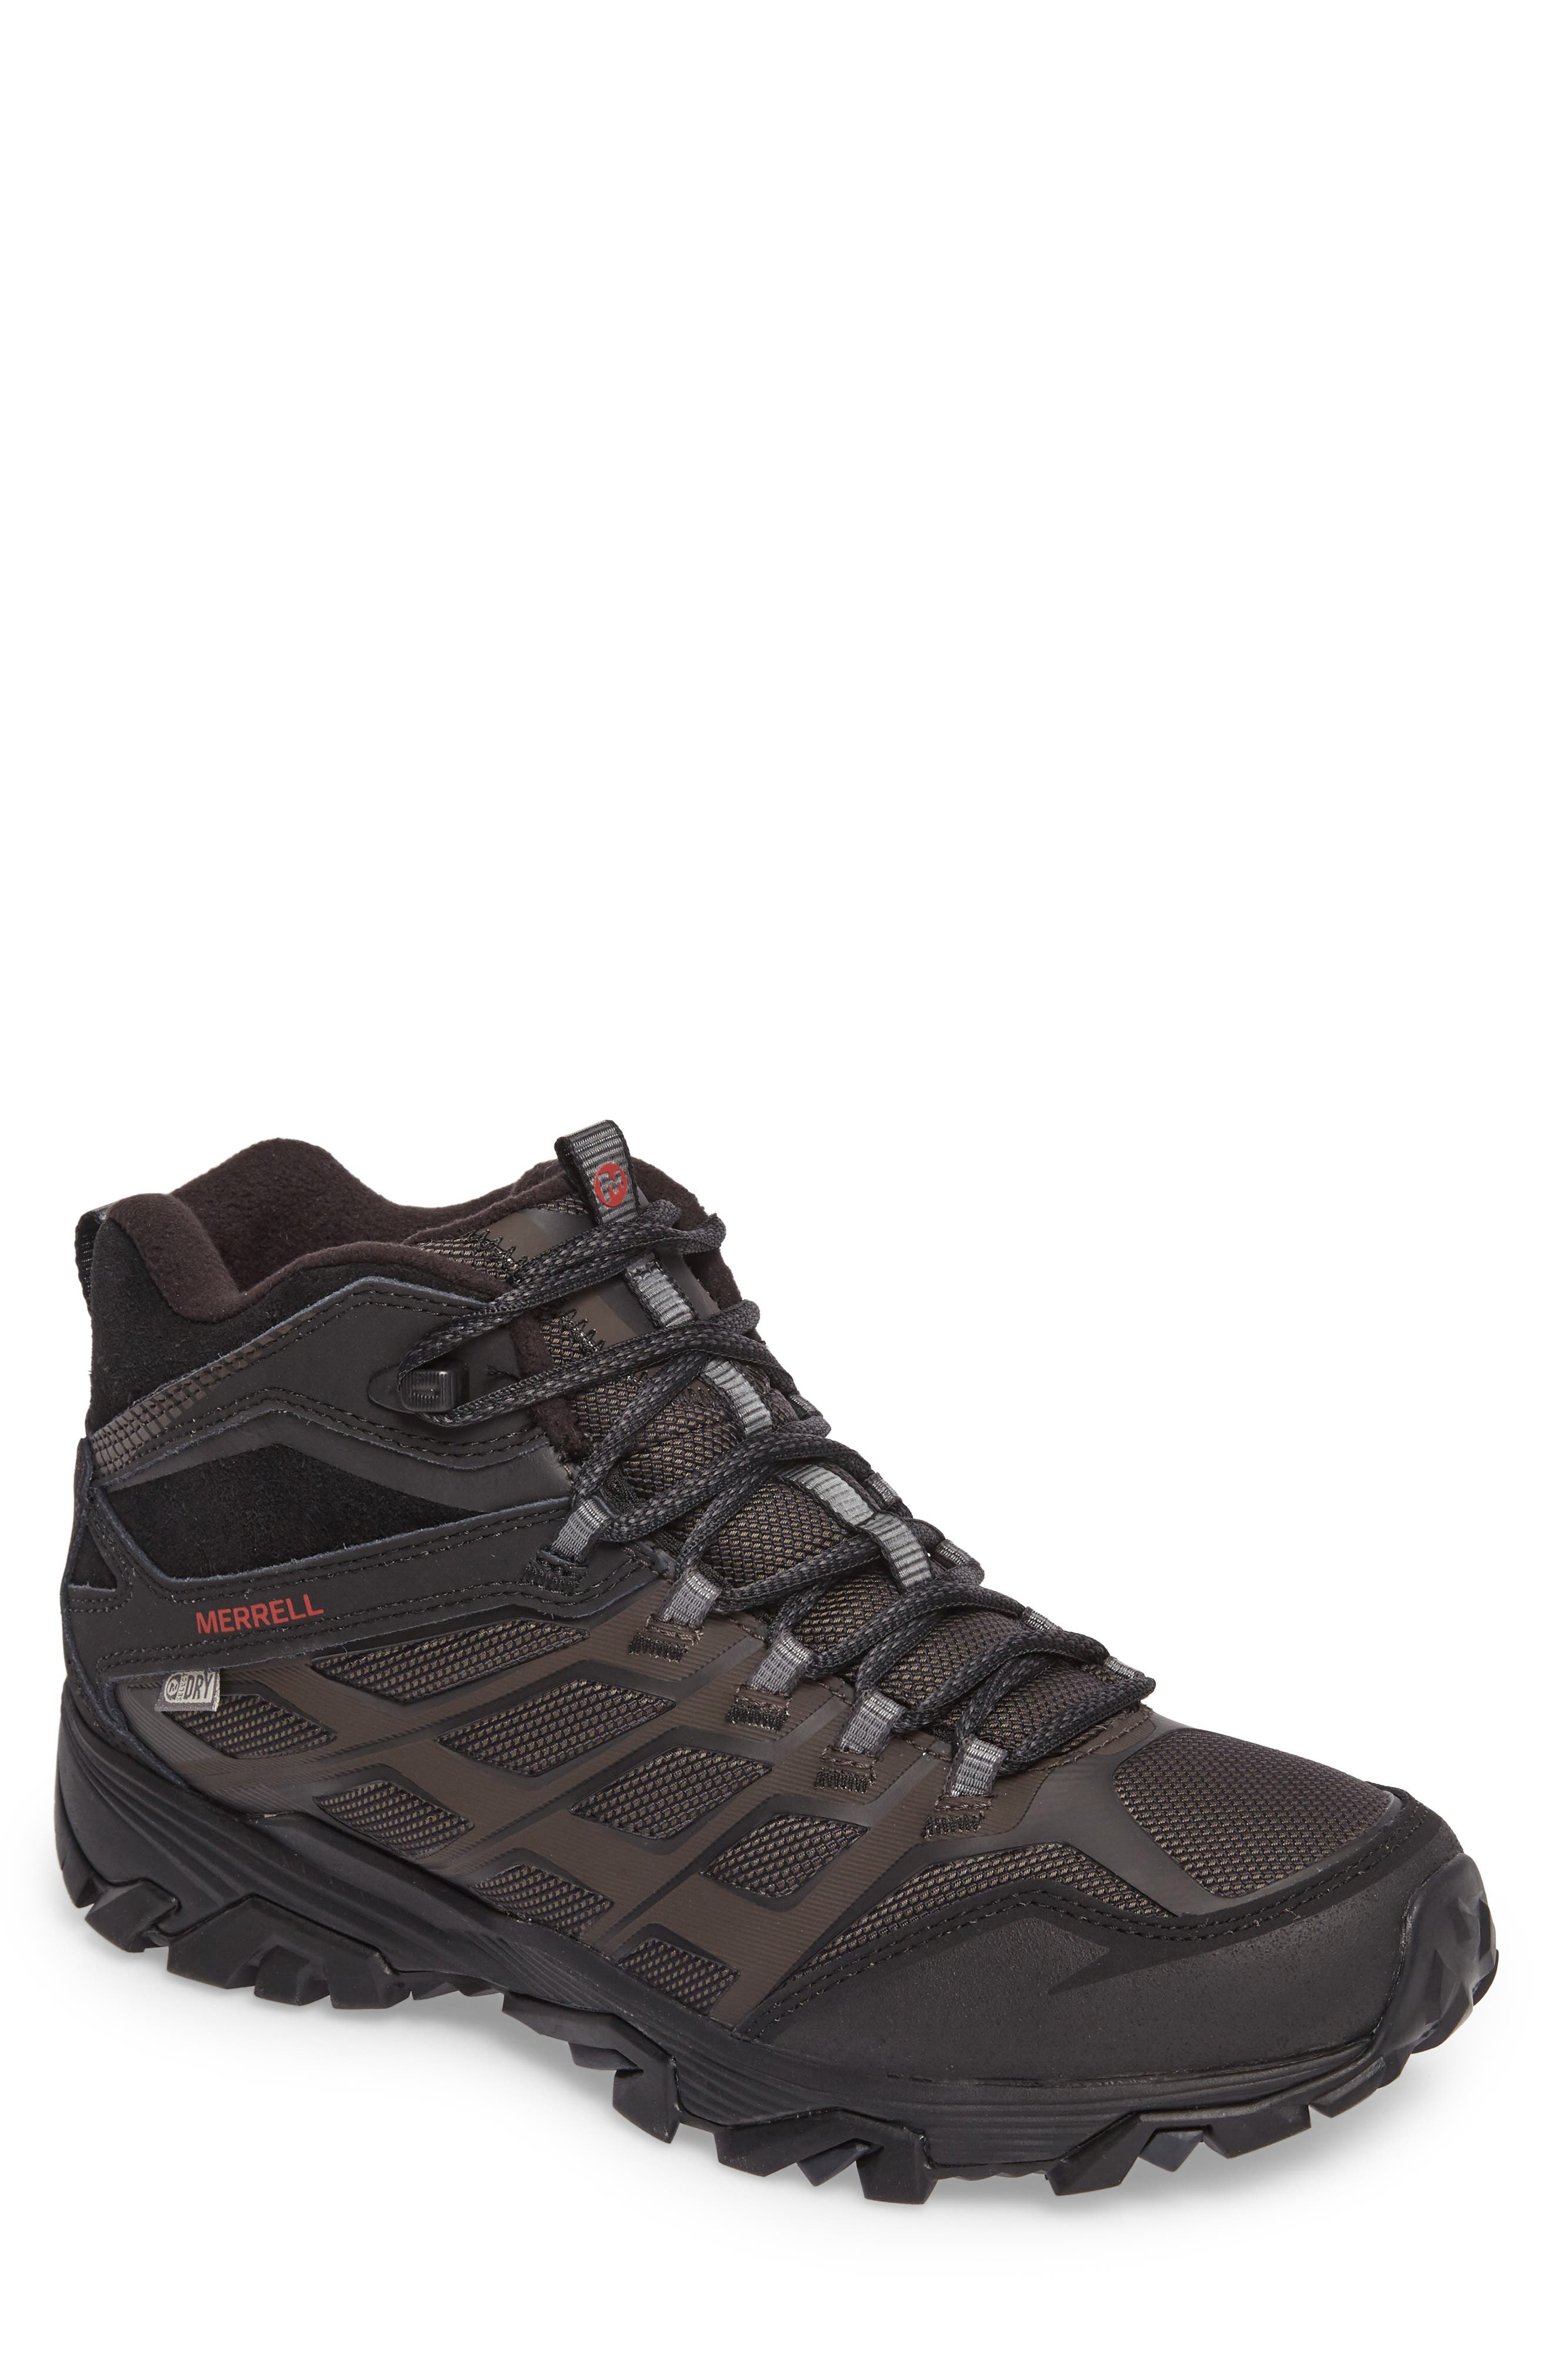 Moab FST Ice Thermo Waterproof Hiking Shoe,                             Main thumbnail 1, color,                             001